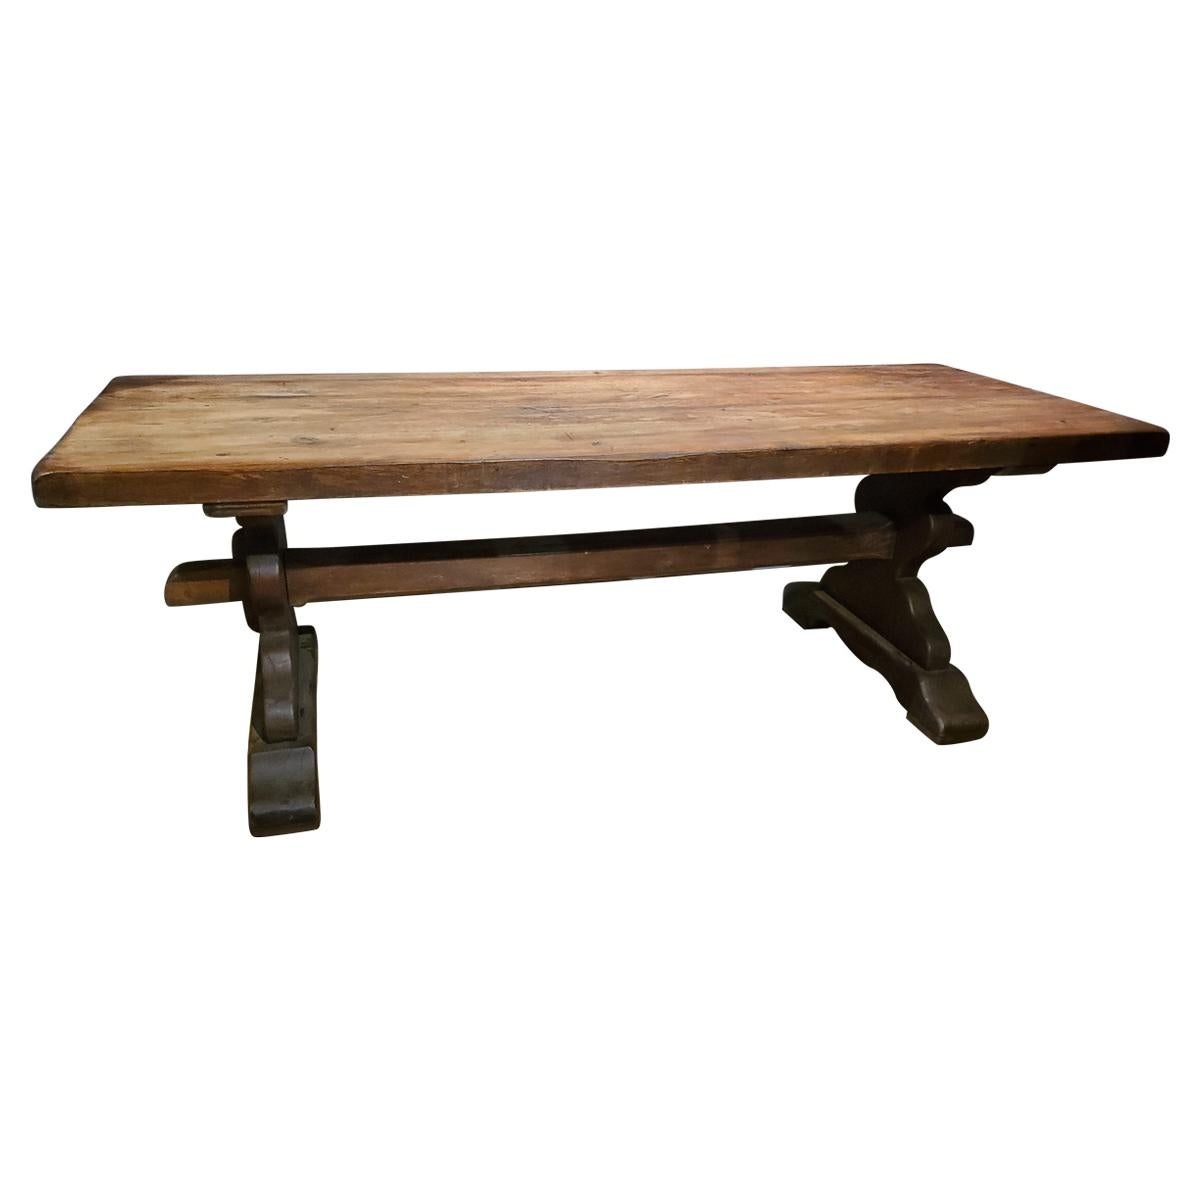 19th Century Louis XIV Style French Provincial Oak Trestle Table